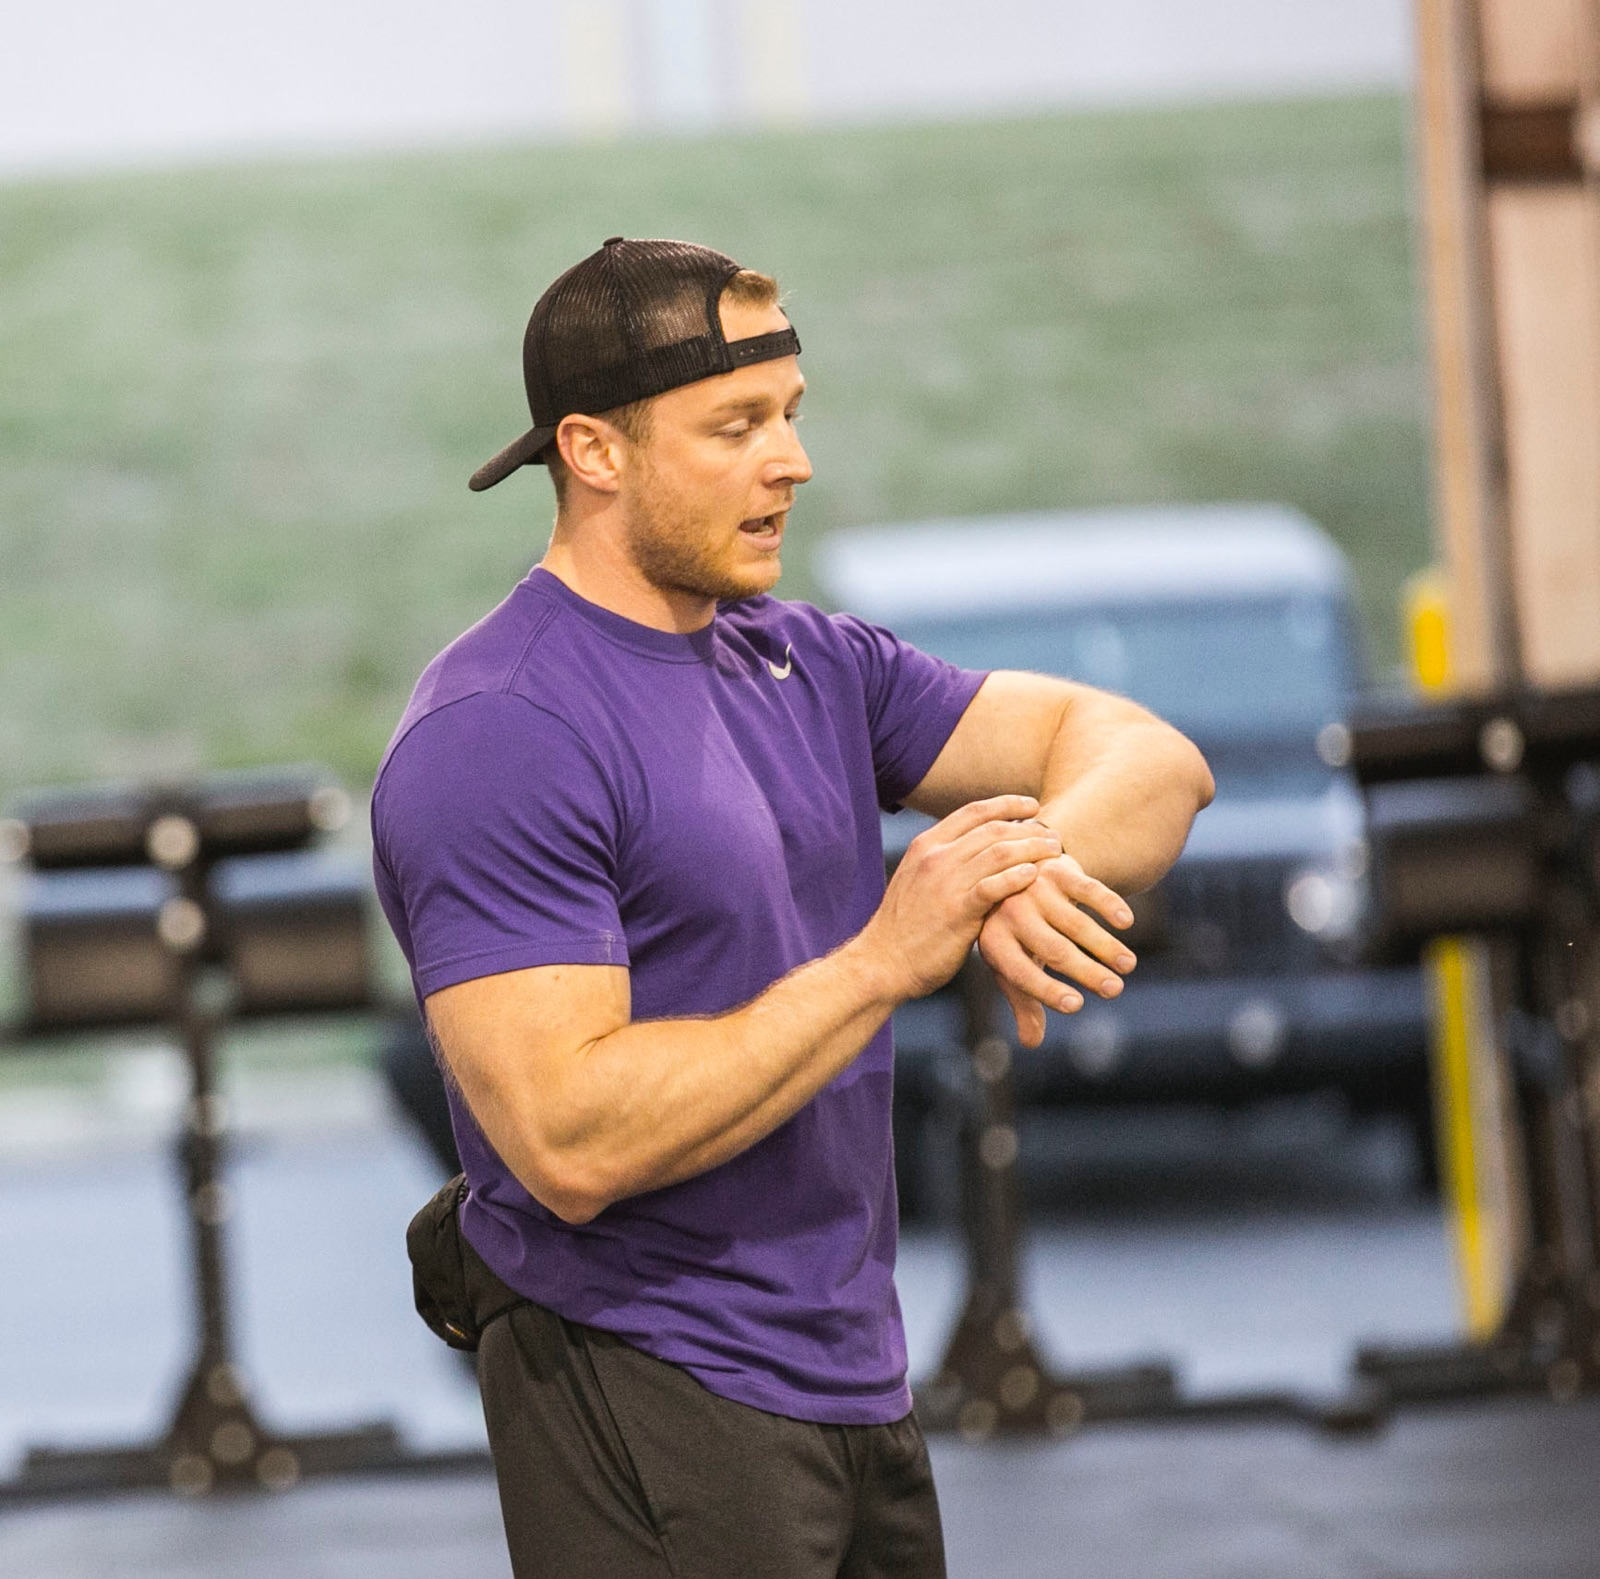 """Coach/Owner Tom started CrossFitting a mind-boggling 13 years ago while he was deployed in Afganistan as a special operator. """"I found CrossFit to be the most effective way to maintain a high level of operational readiness,"""" he says.  Toms' passion is changing his members' mindsets in their approach to life, including accepting adversity for what it is: an opportunity to grow instead of another hurdle to jump. """"I love helping members change and extend their lives,"""" he says. """"I also love adapting people to a different mindset and approach to life. I love seeing people own their current fitness and making a commitment to do something about it.""""  When Tom isn't in school, you can find him hanging out with his wife, Deb, hitting the books in law school, or picking out which fanny pack to wear for the day.  CERTIFICATIONS: Bachelors Degree Juris Doctorate CrossFit level 1 certified coach CrossFit level 2 coach OPOTA certified"""